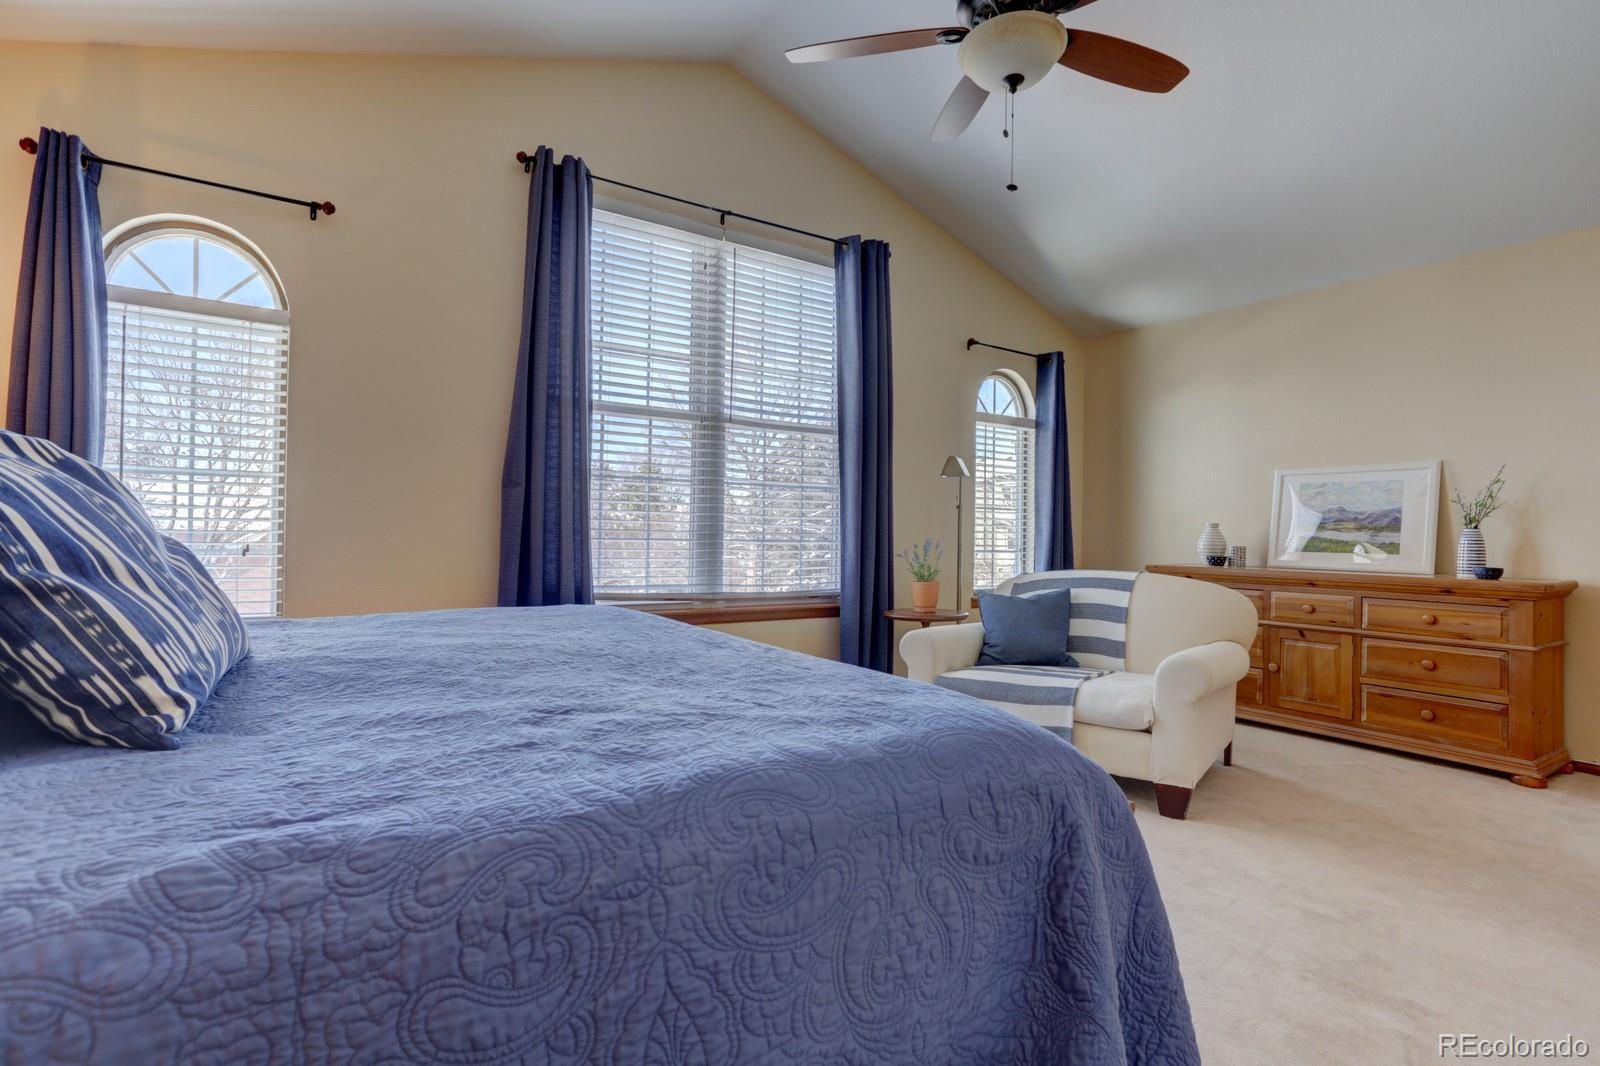 MLS# 5985159 - 19 - 9991 Spring Hill Place, Highlands Ranch, CO 80129